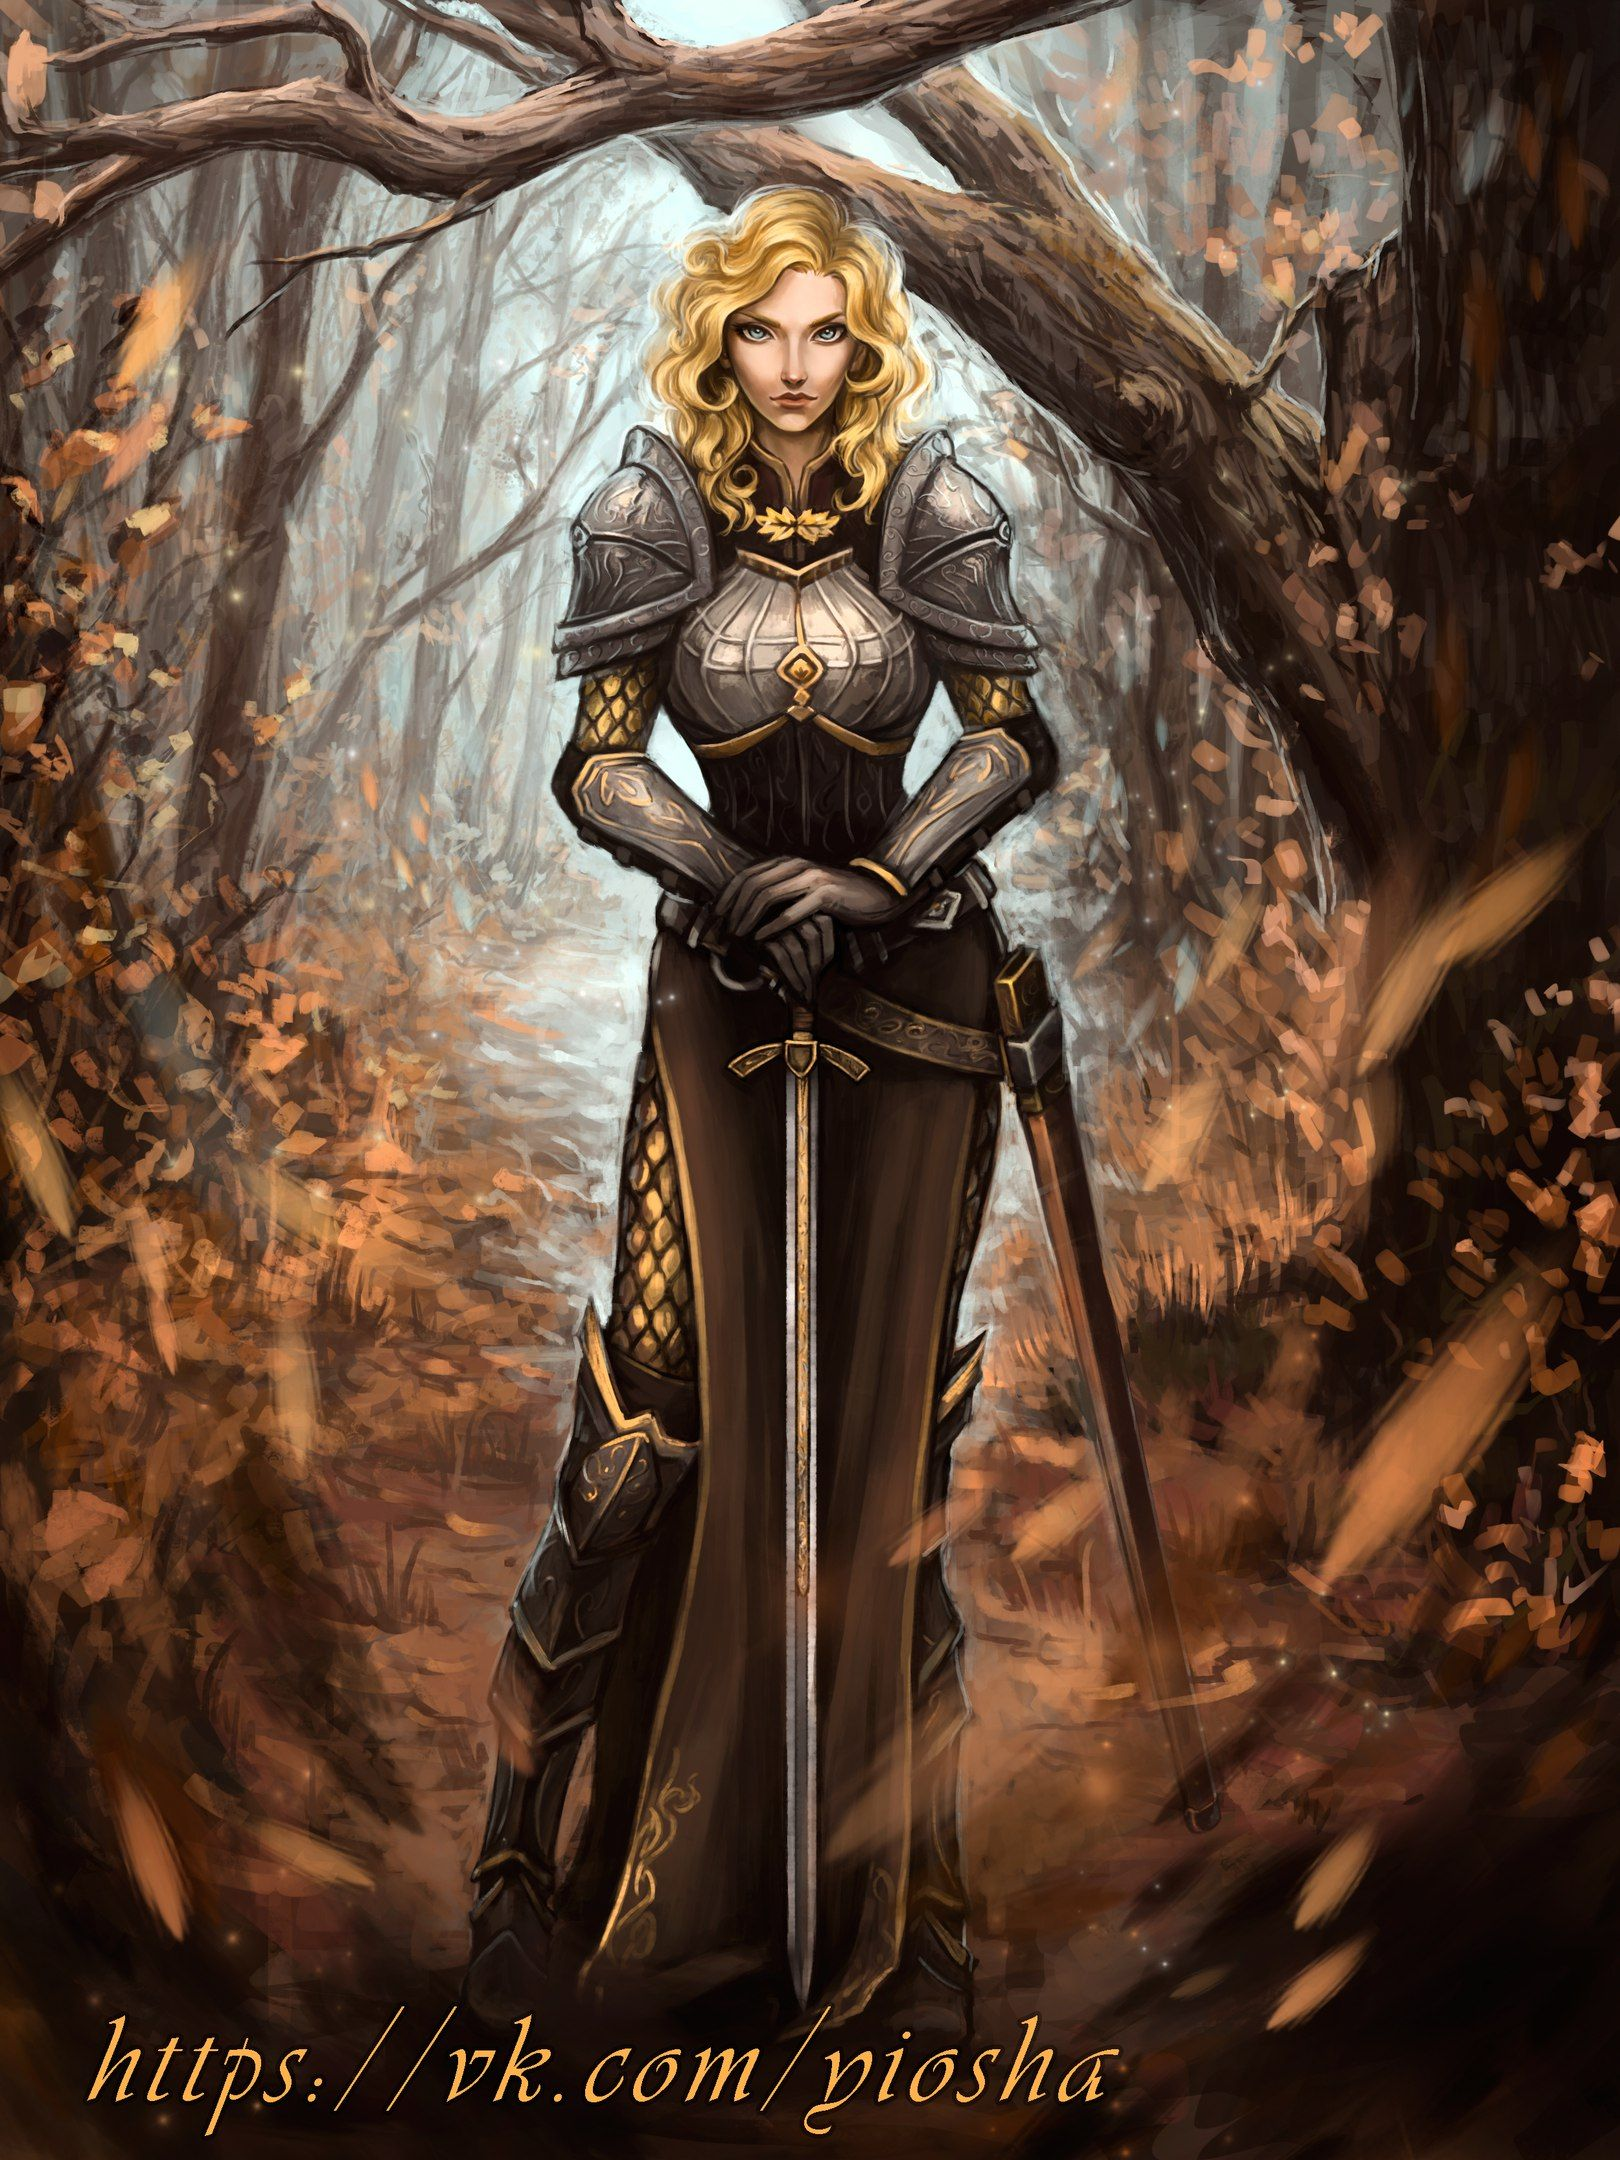 Female Human Sword Plate Armor Cleric Fighter Paladin - Pathfinder PFRPG DND D&D d20 fantasy in ...